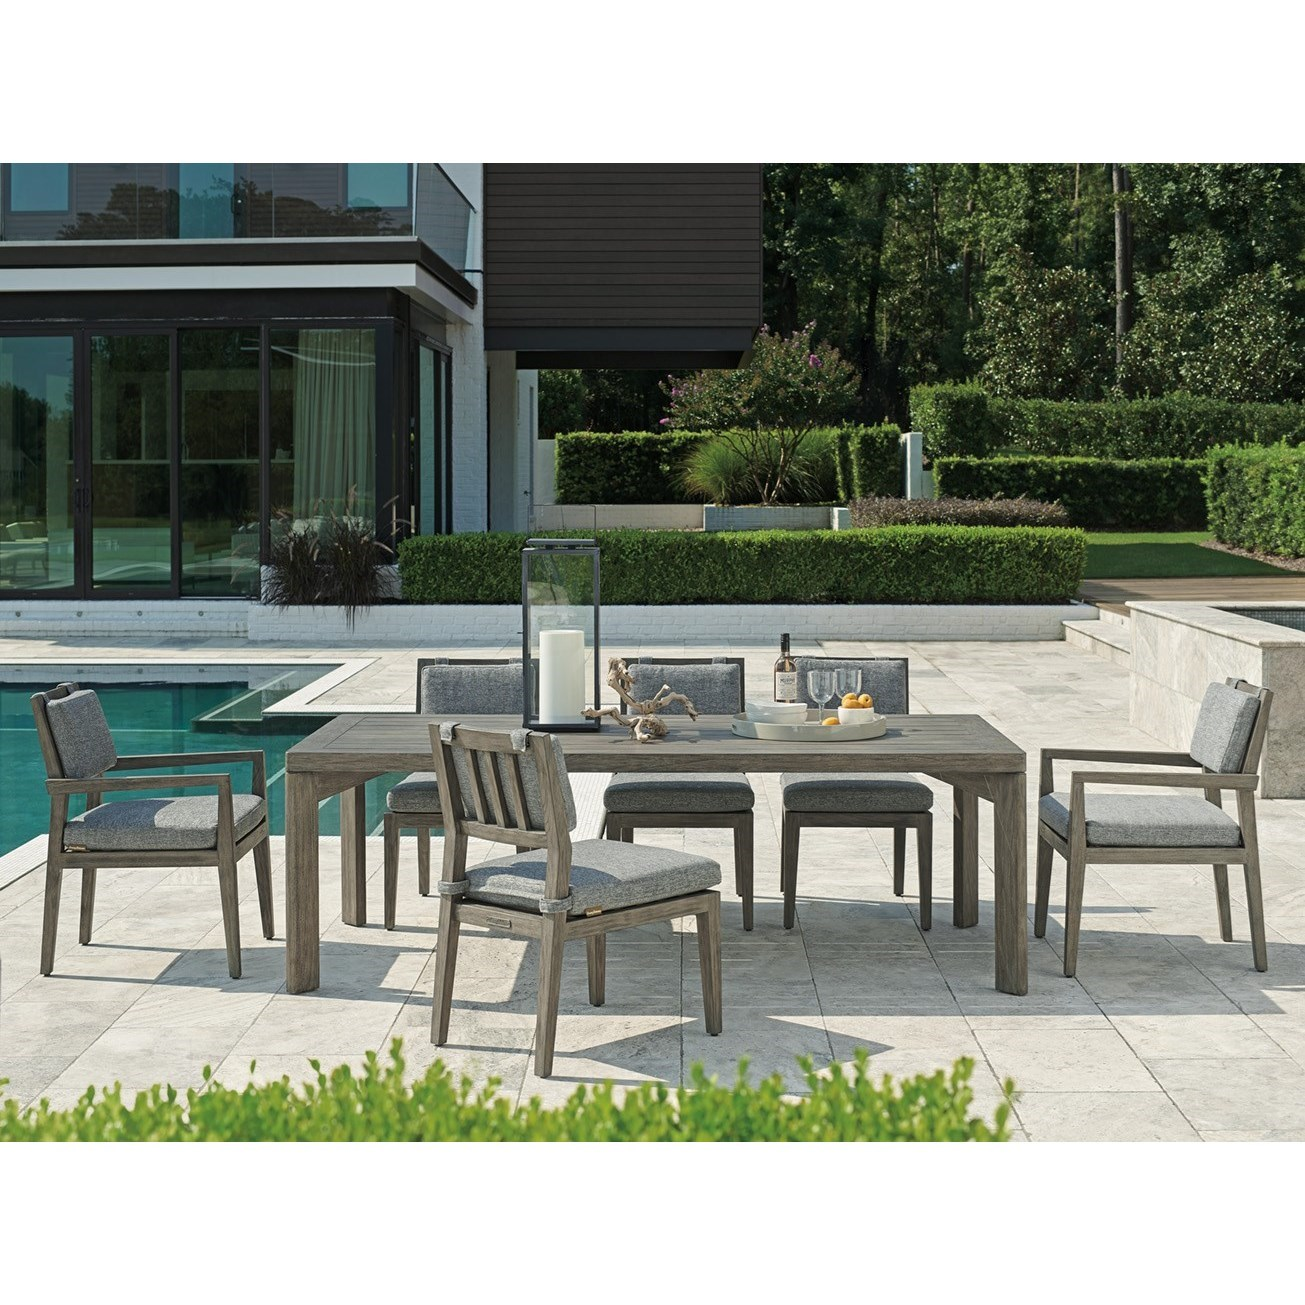 La Jolla 7-Piece Outdoor Dining Set by Tommy Bahama Outdoor Living at Furniture Superstore - Rochester, MN